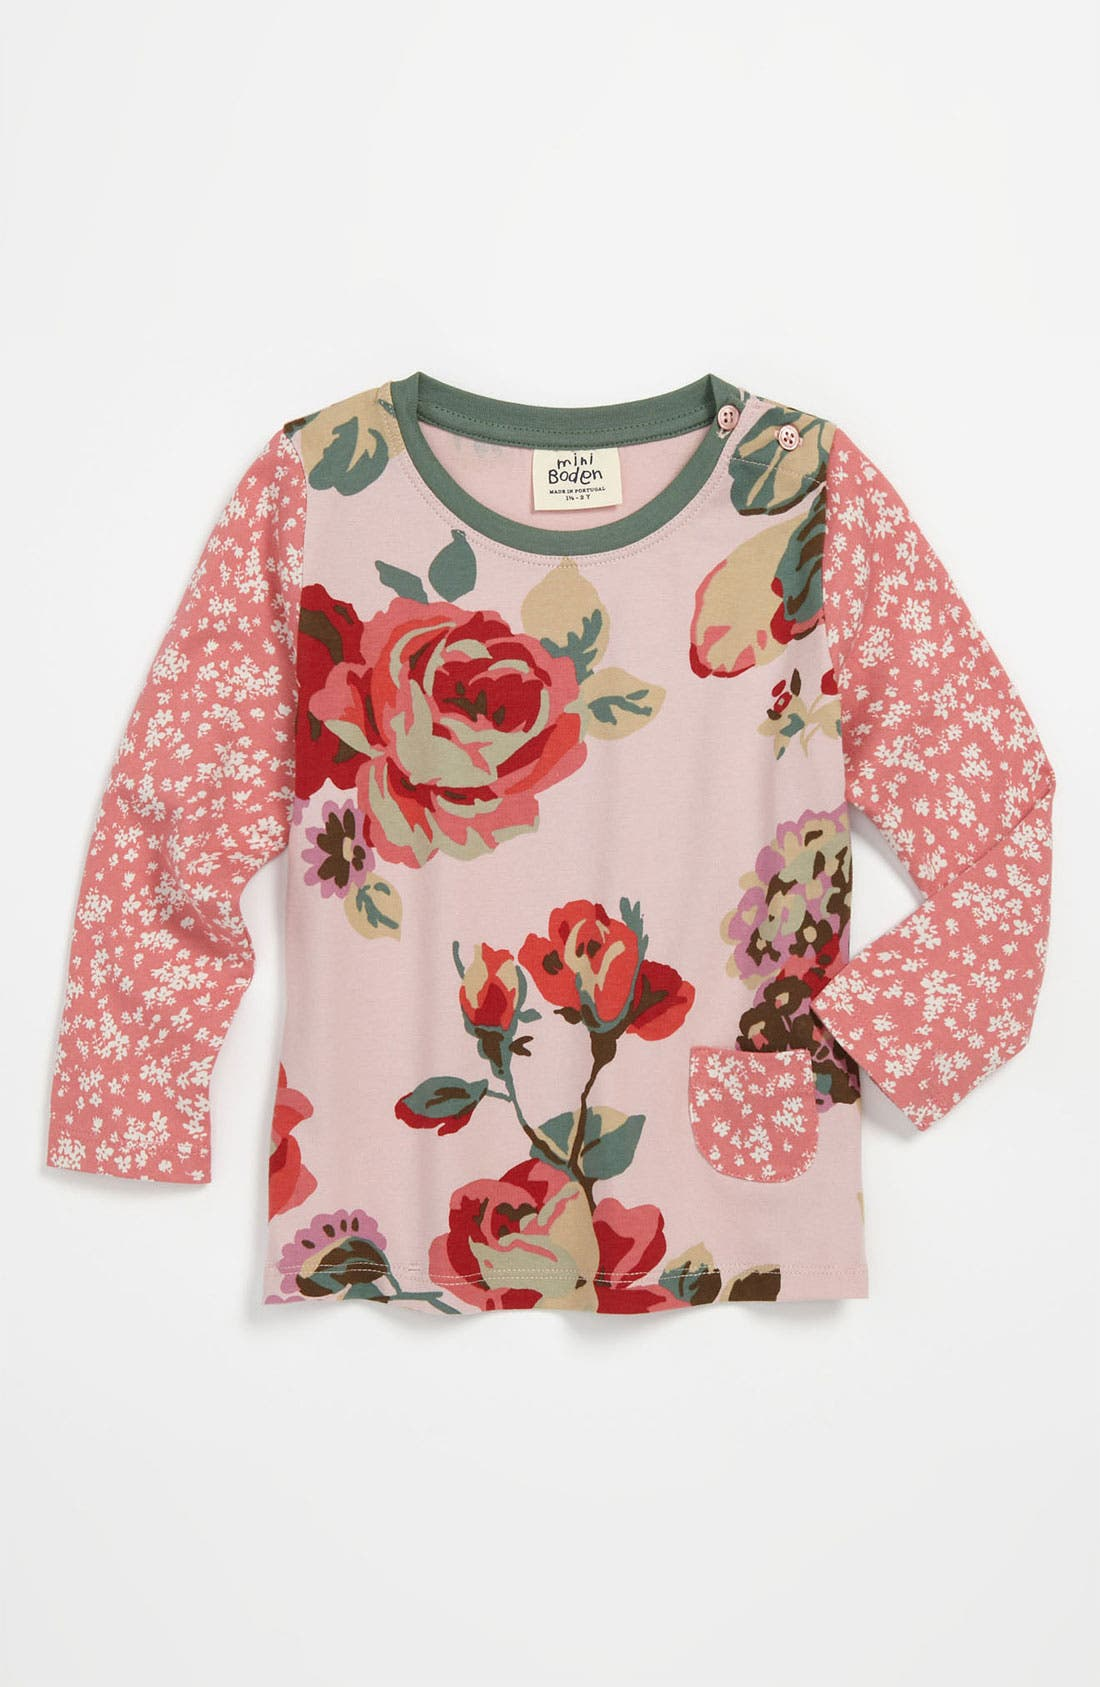 Main Image - Mini Boden 'Hotchpotch' Tee (Toddler)